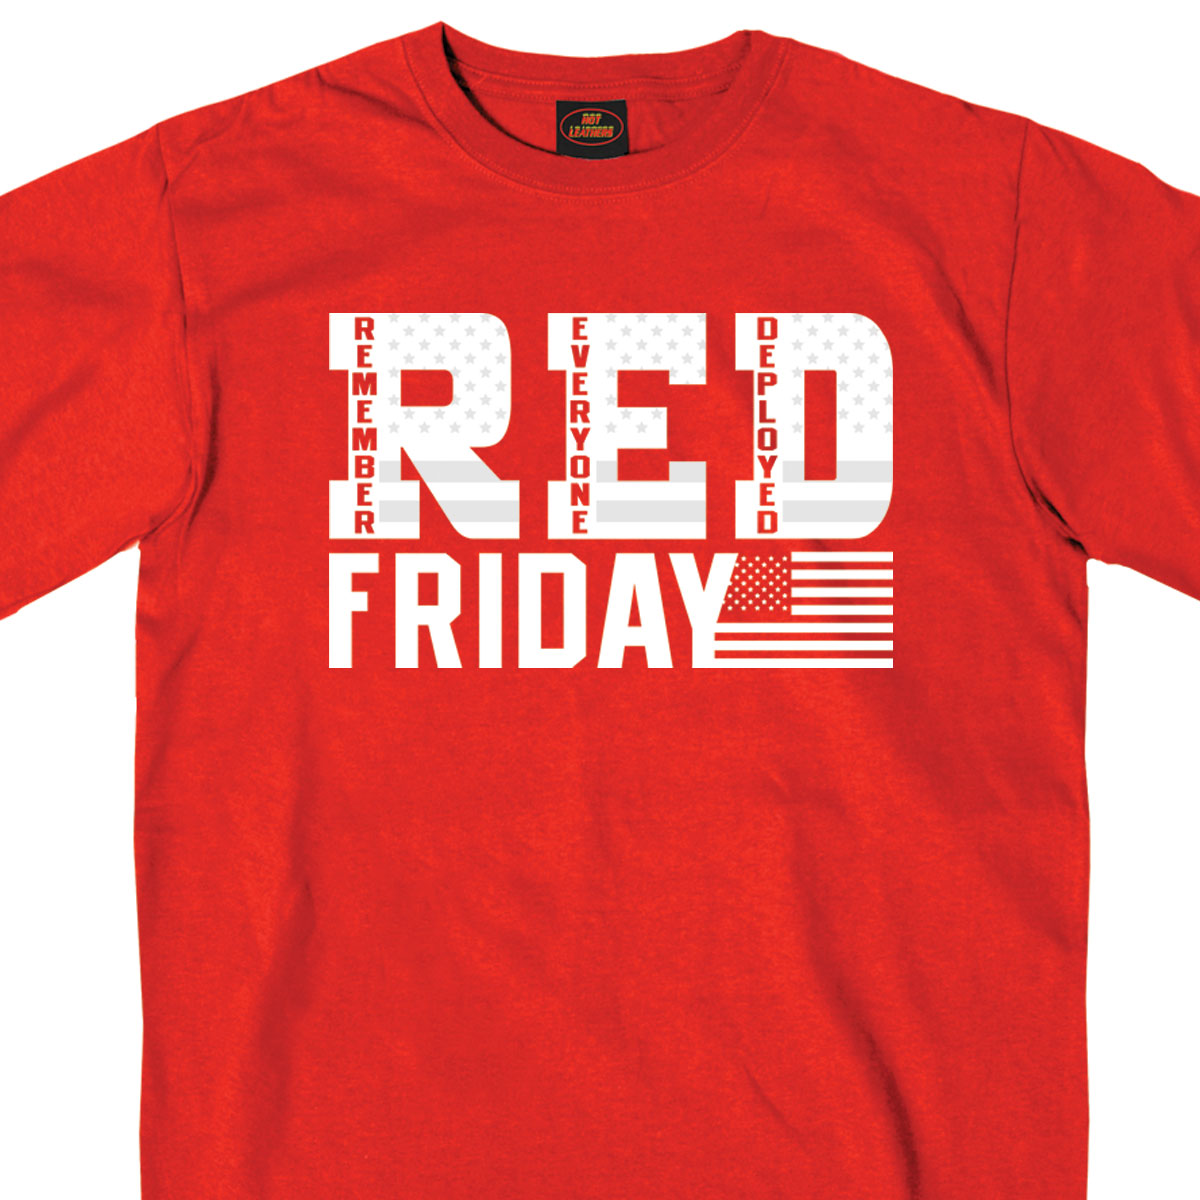 Hot Leathers Red Short Sleeve RED Friday Shirt